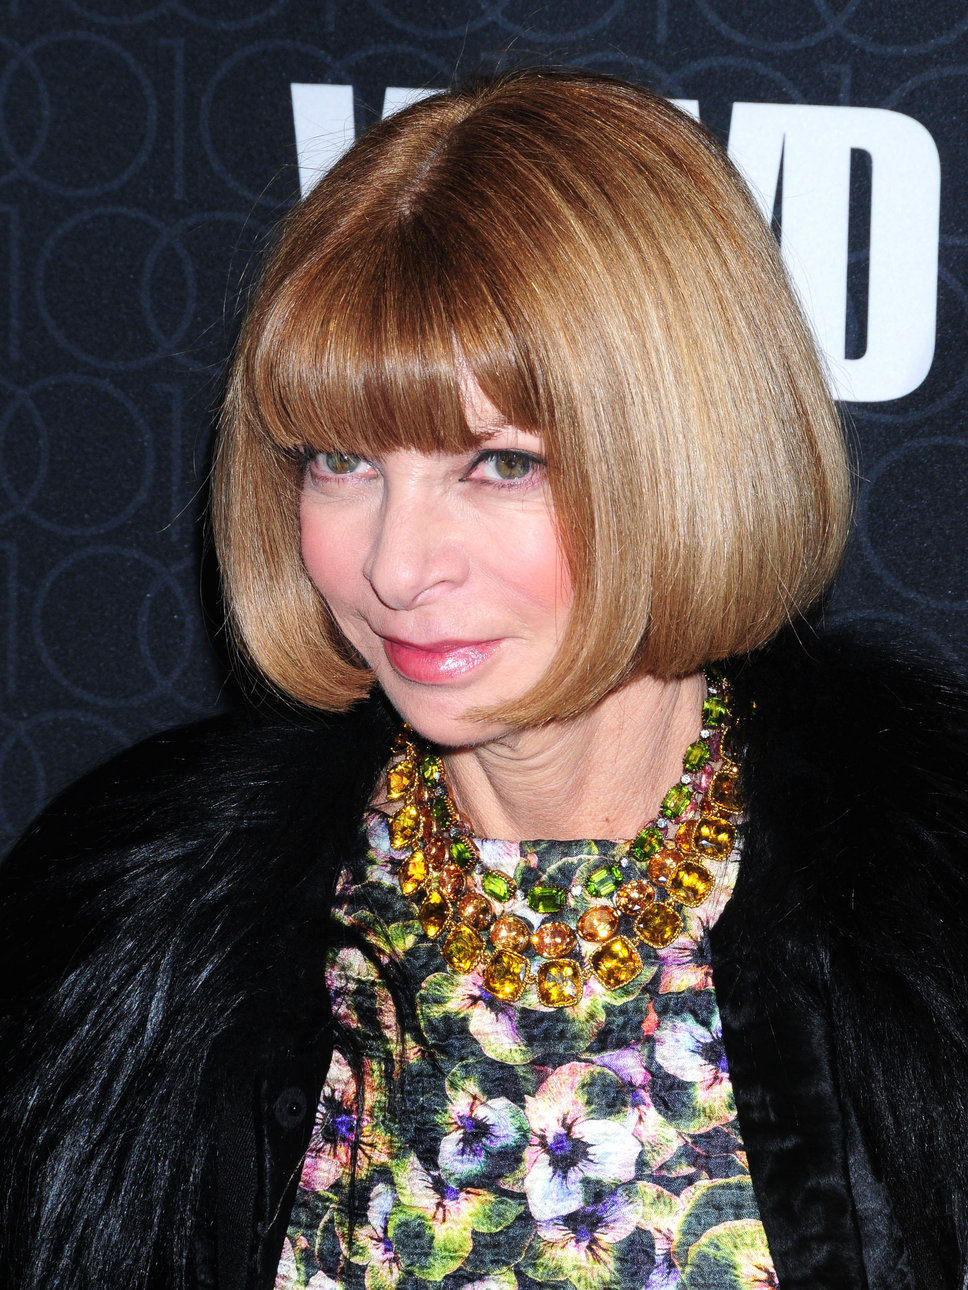 Anna Wintour Banned Ariana Grande From Wearing Ponytail: 301 Moved Permanently